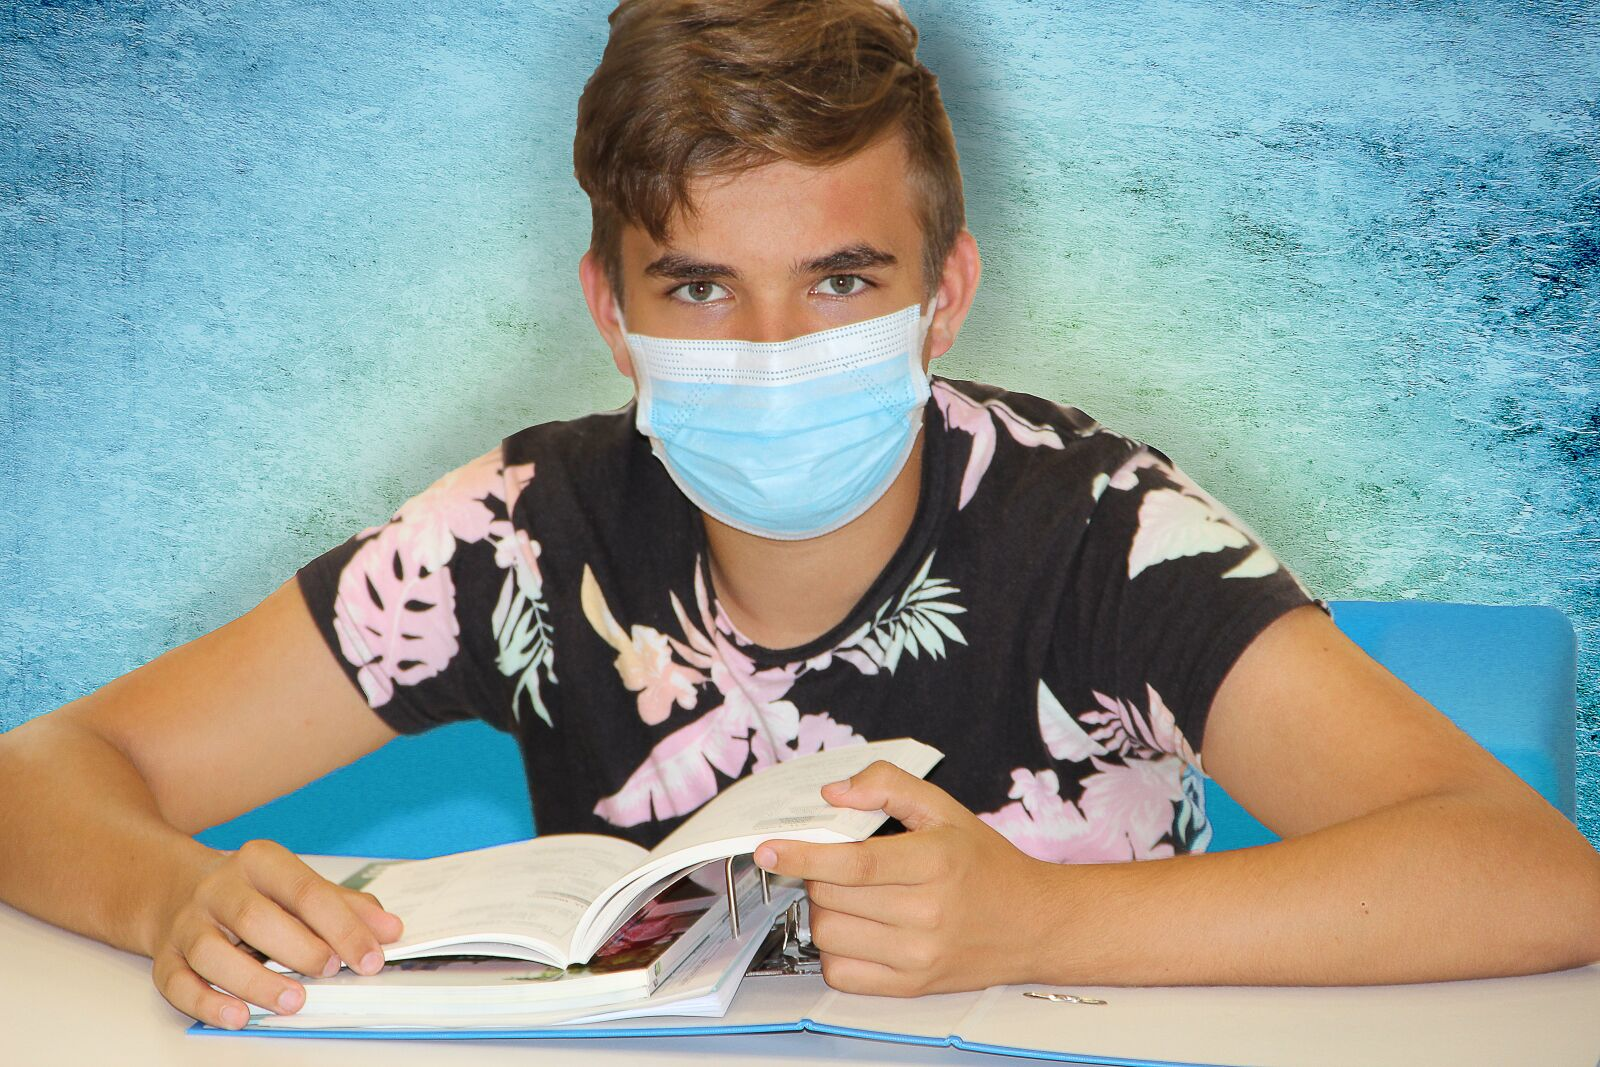 """Canon EOS 600D (Rebel EOS T3i / EOS Kiss X5) sample photo. """"Student, face mask, books"""" photography"""